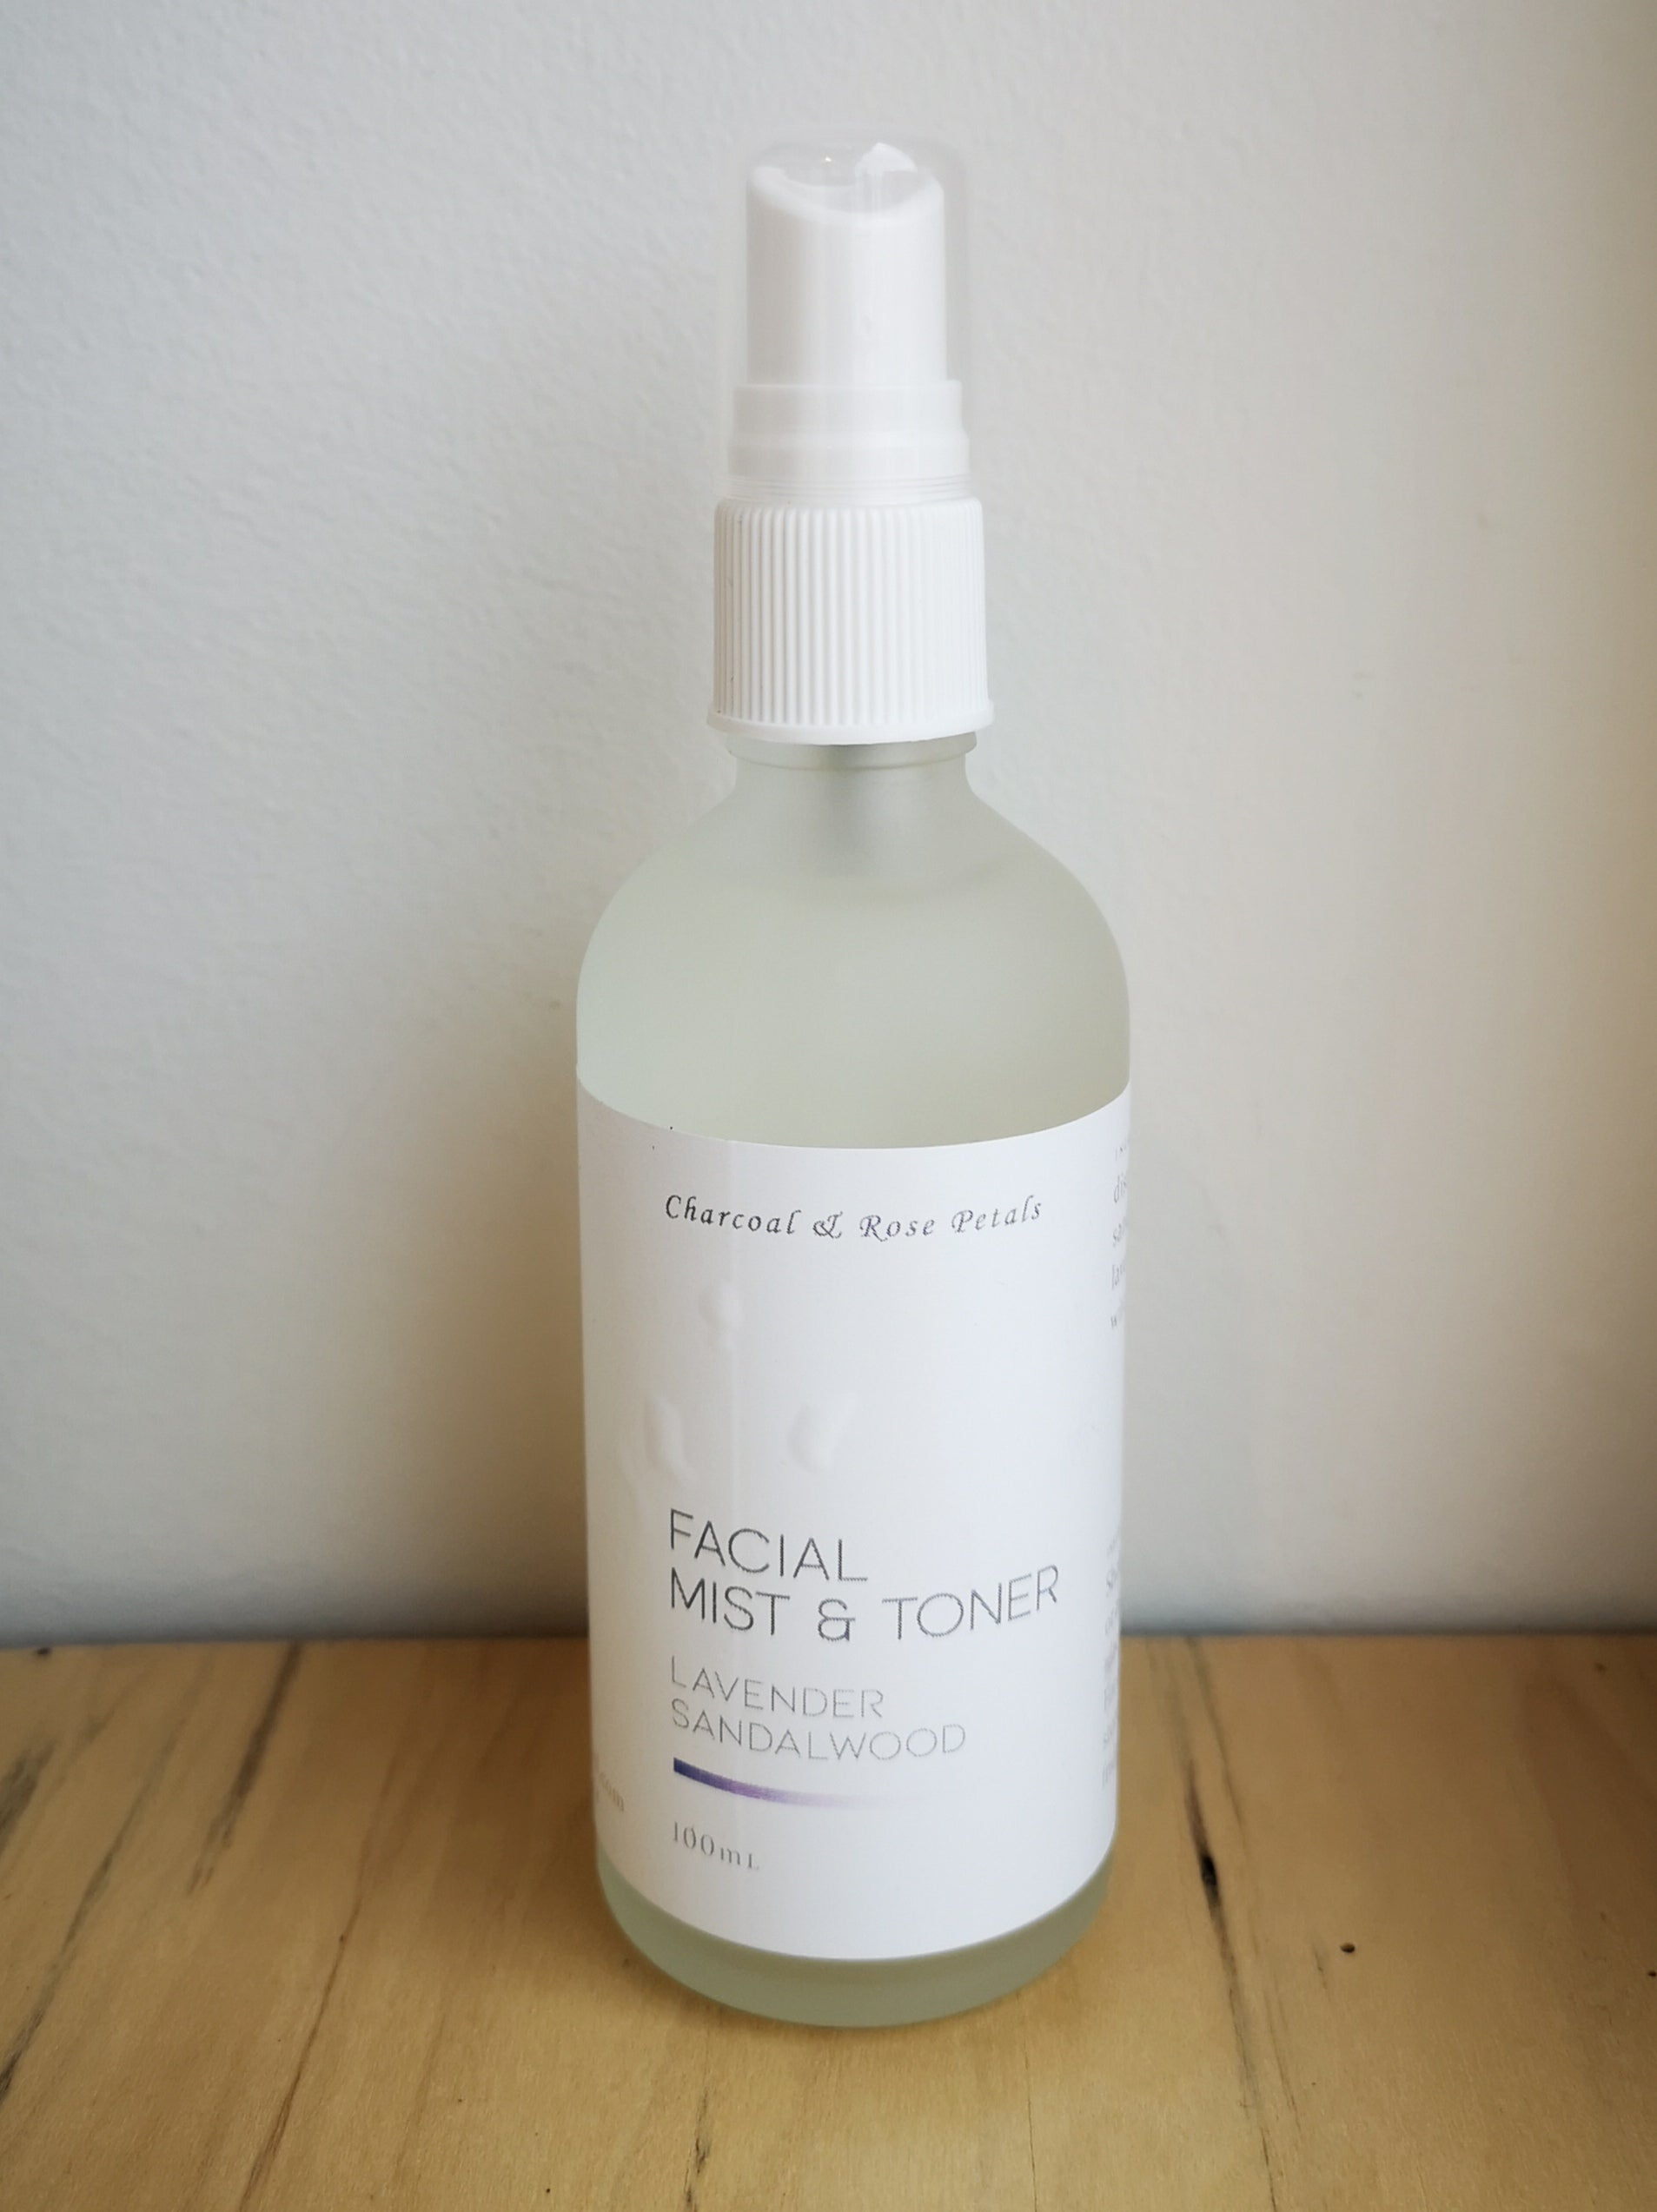 Facial Mist & Toner | Charcoal & Rose Petals